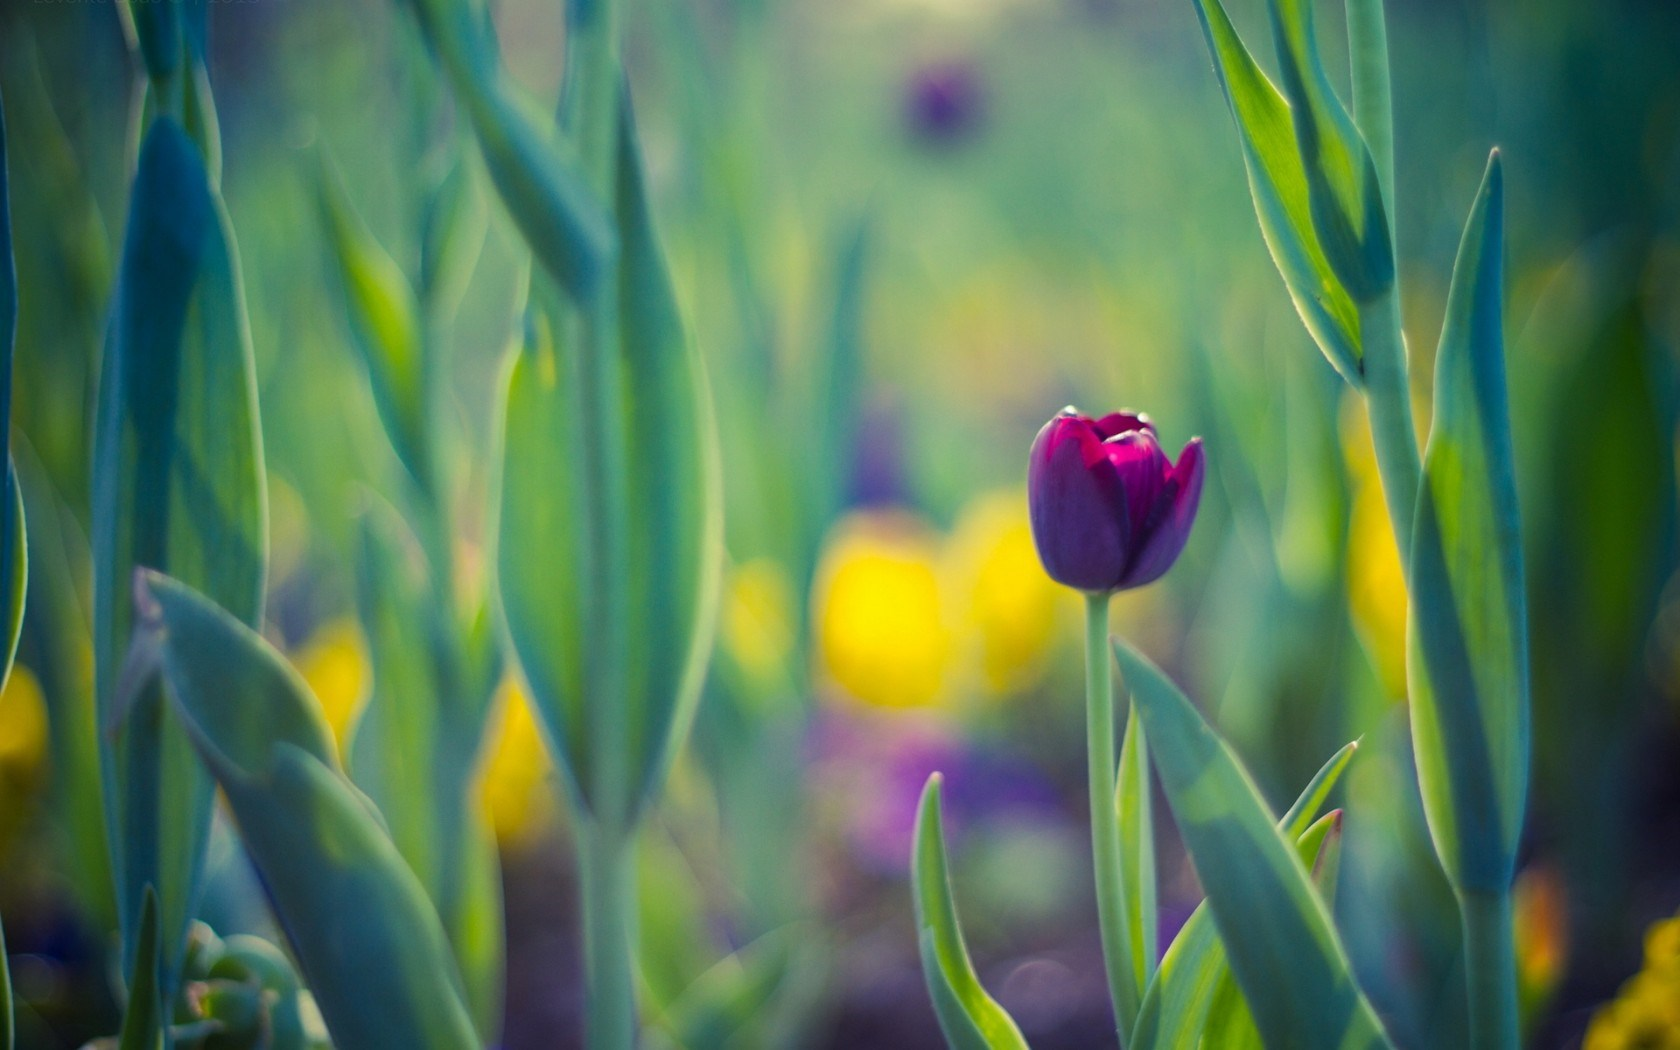 Download wallpapers yellow tulips purple tulips a bouquet of